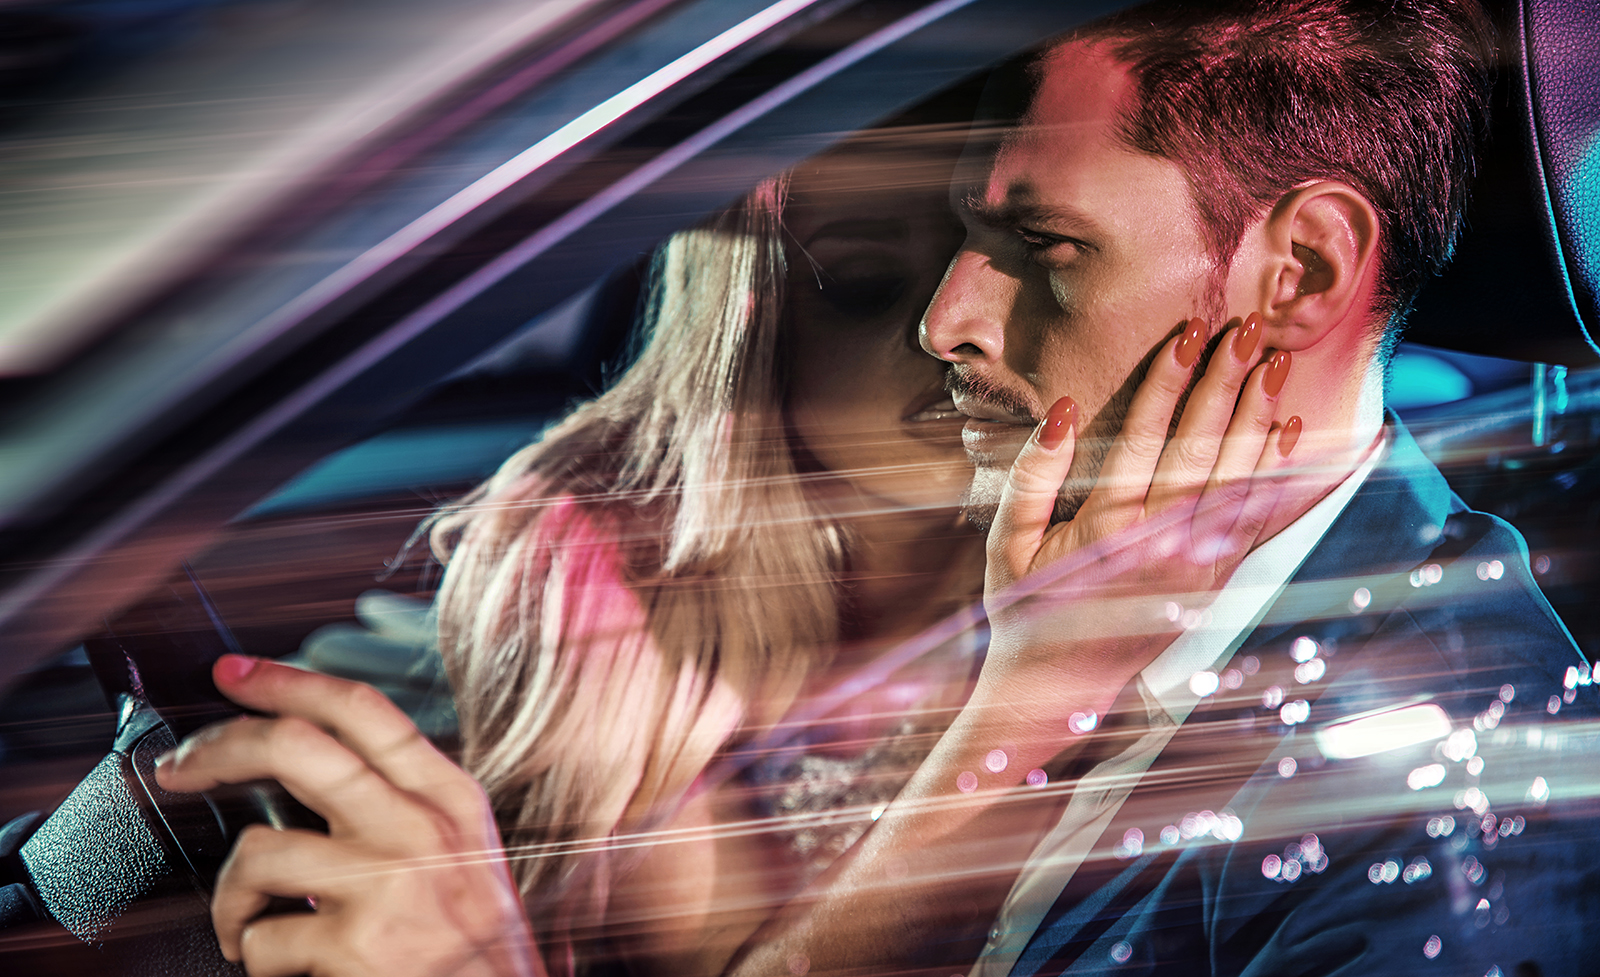 woman-in-car-kissing-man-sex-sexy-main-image